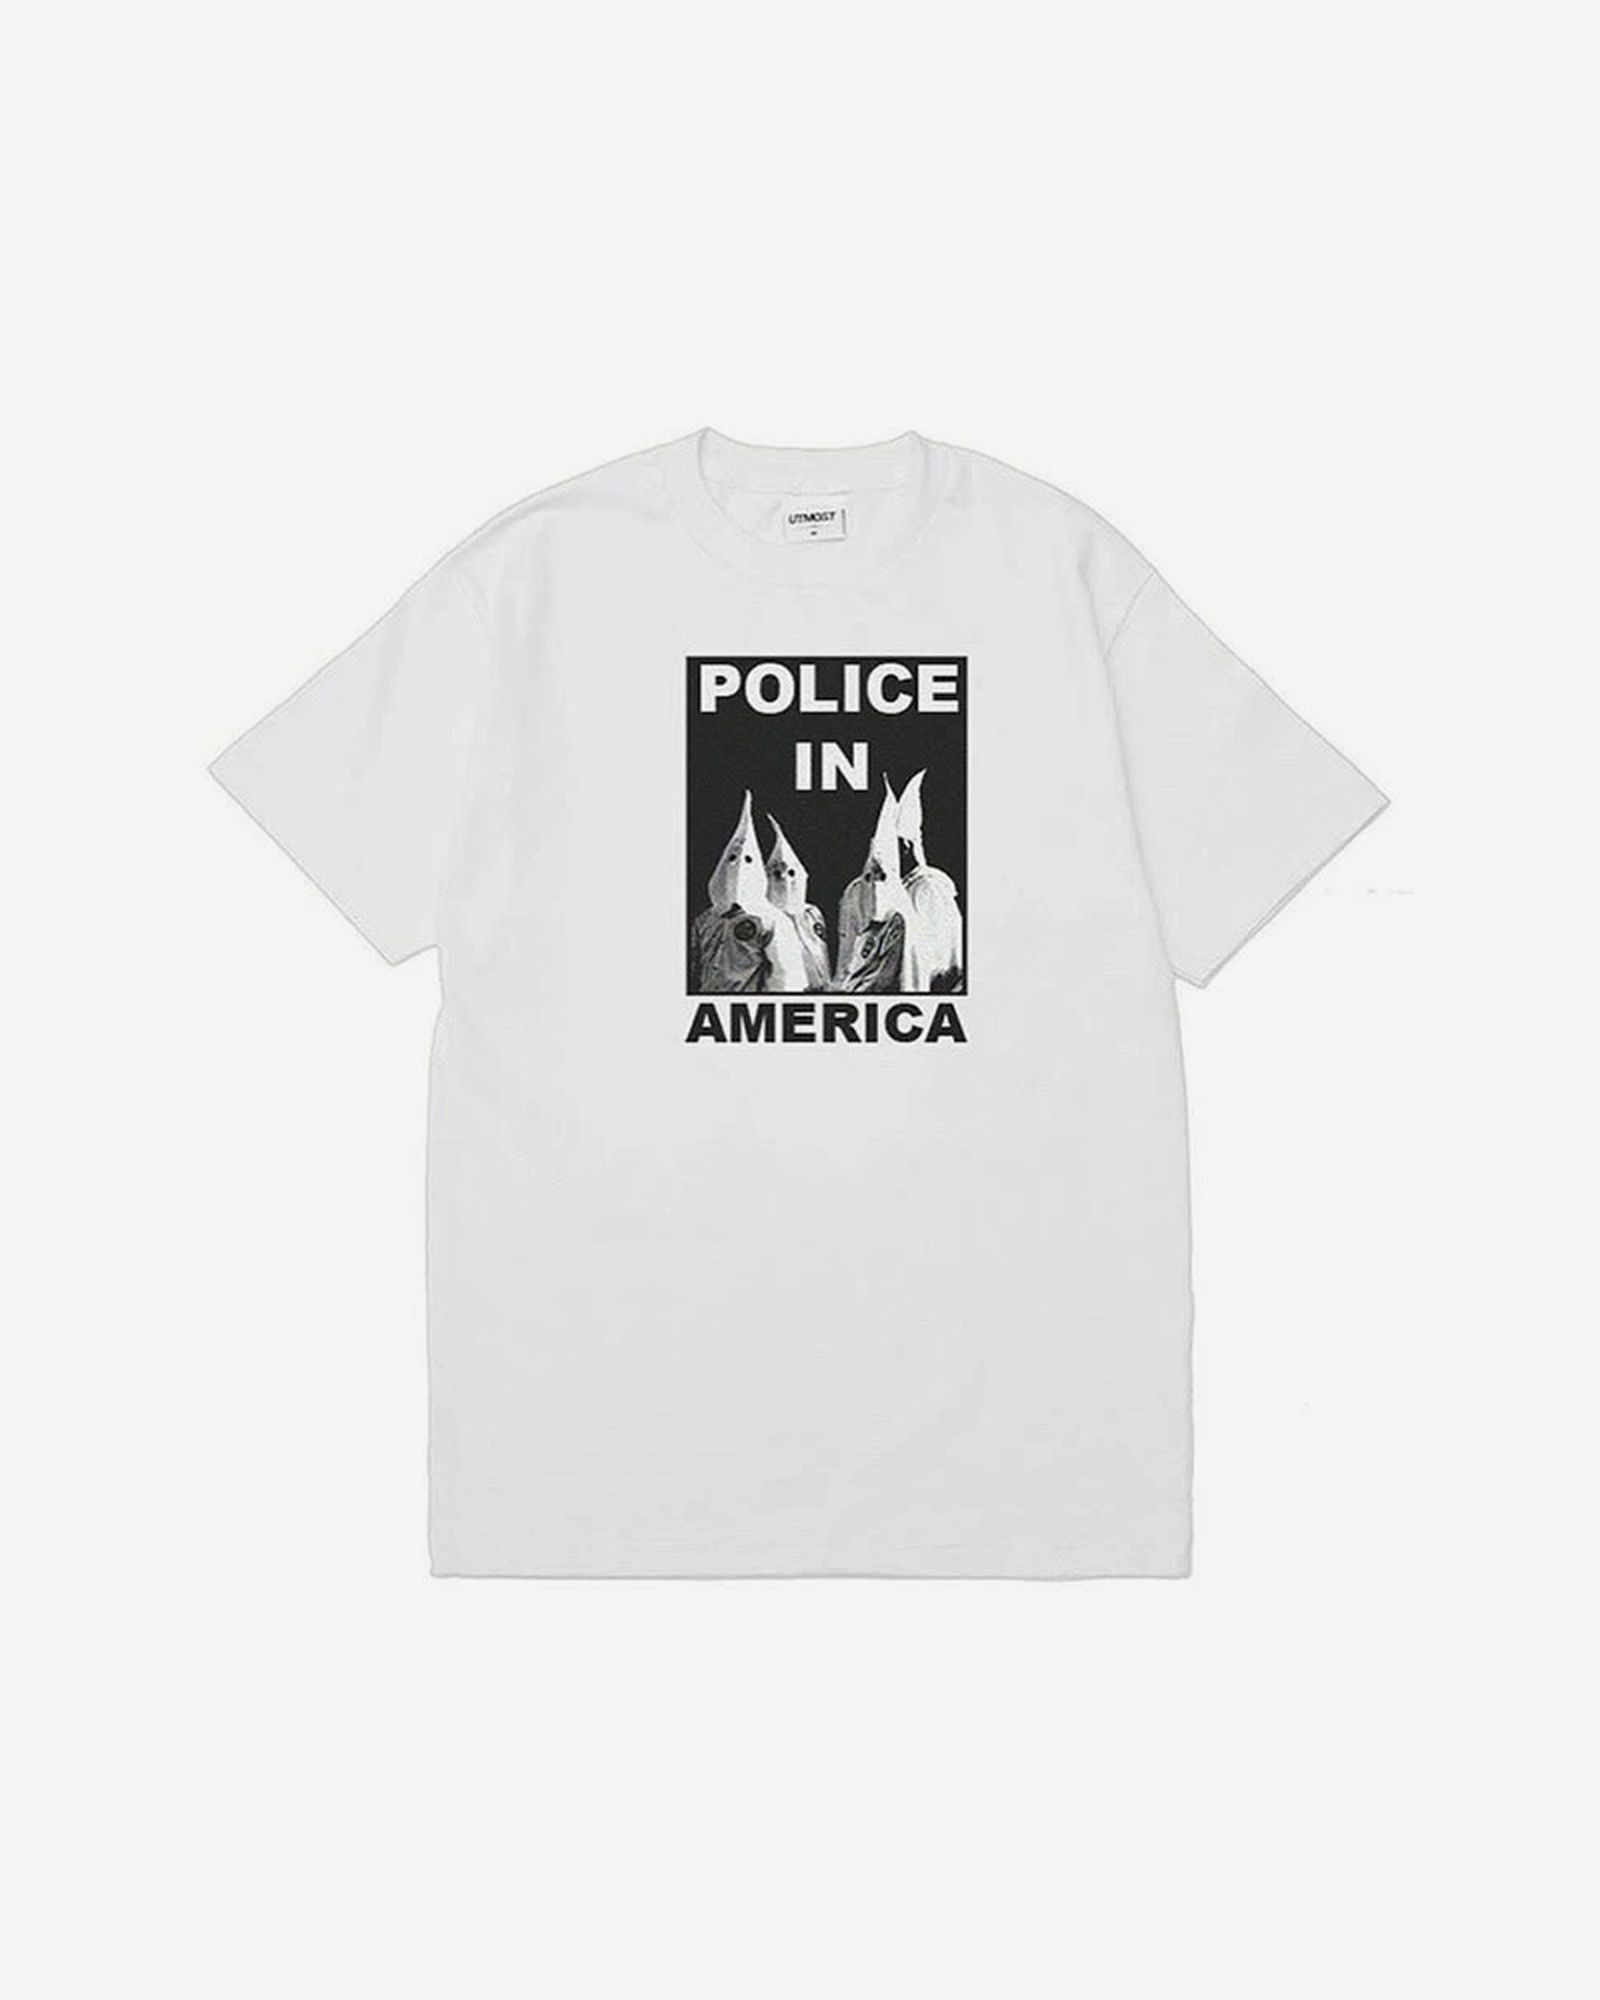 support-black-lives-matter-causes-with-these-charity-t-shirts-and-more-2-18